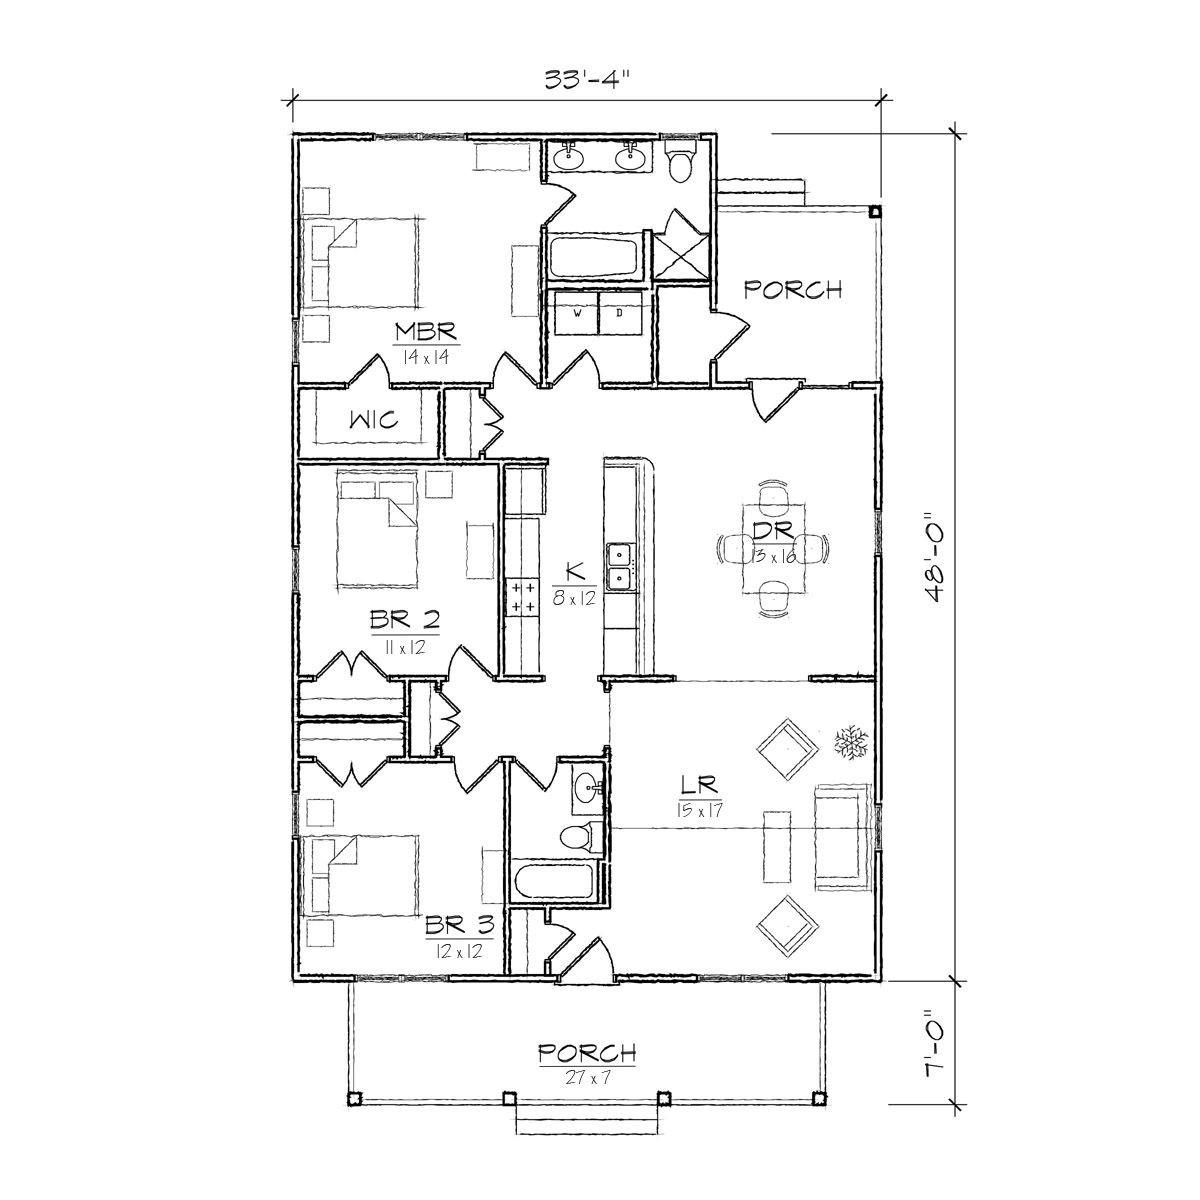 1000 images about floor plans on pinterest bungalow floor plans bungalows and house plans